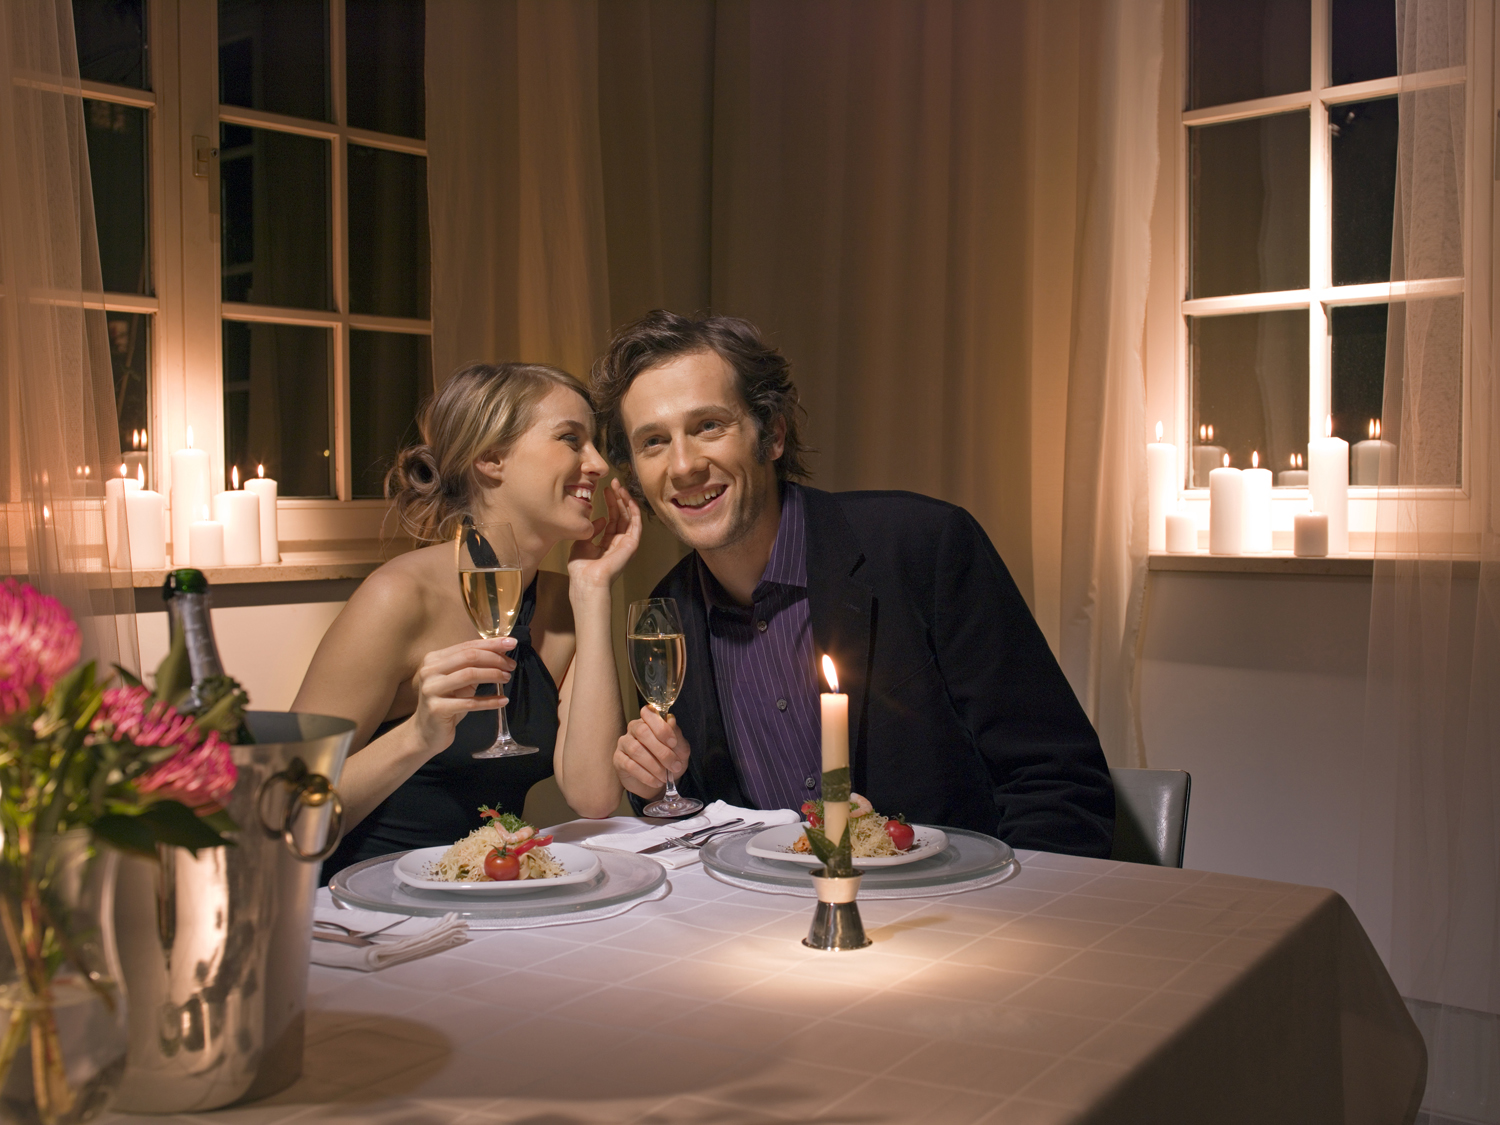 Dinner dates dating services